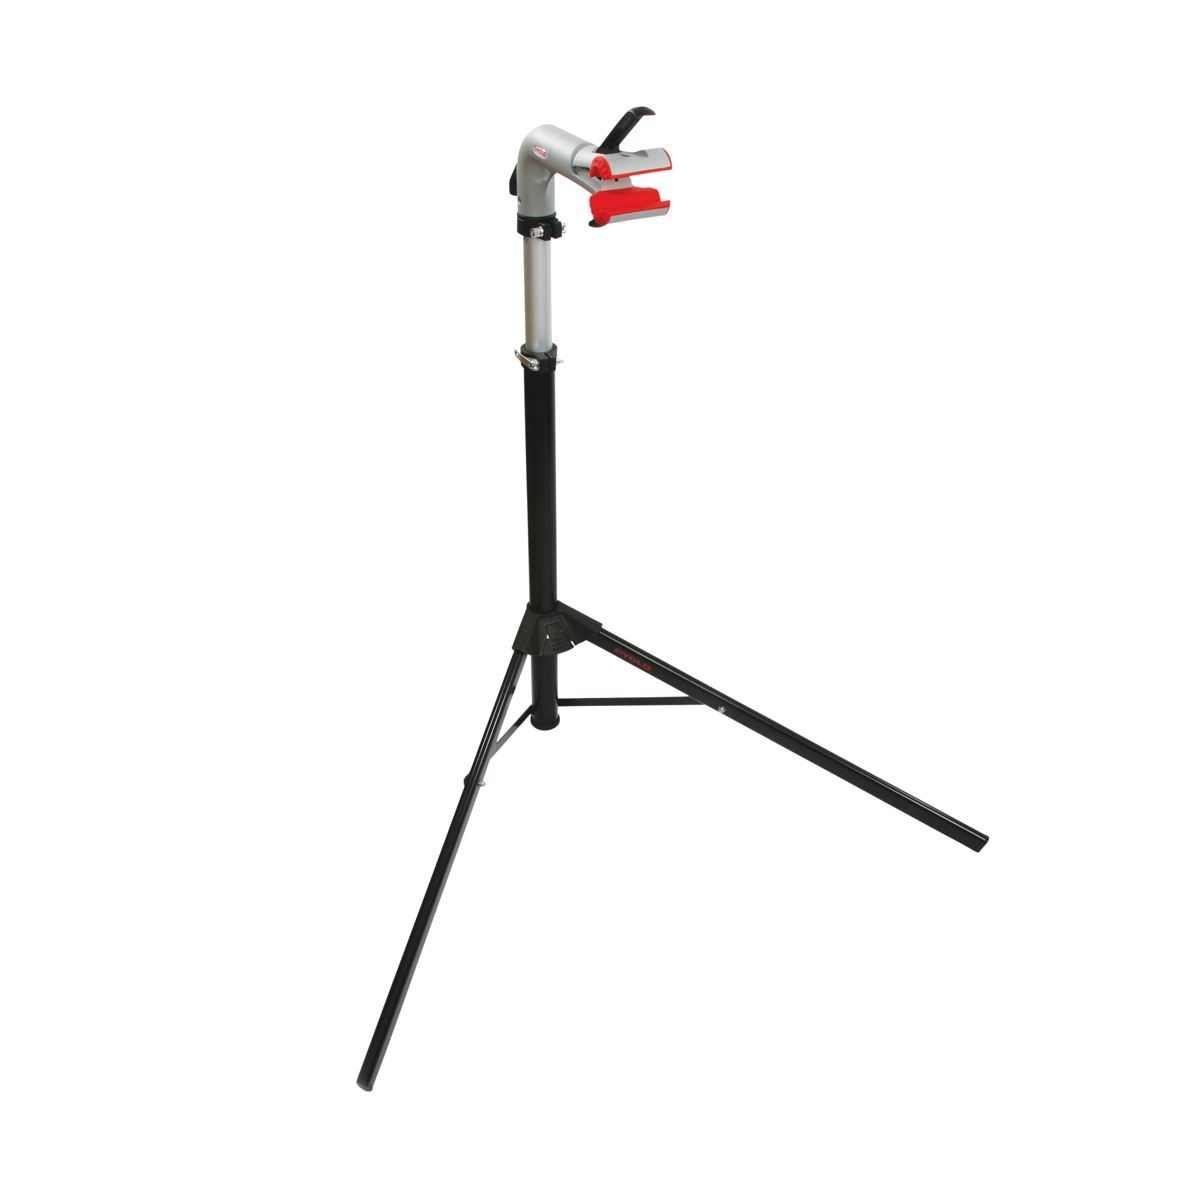 Cyclo Portable Bike Work Stand (Includes Clamp Head)